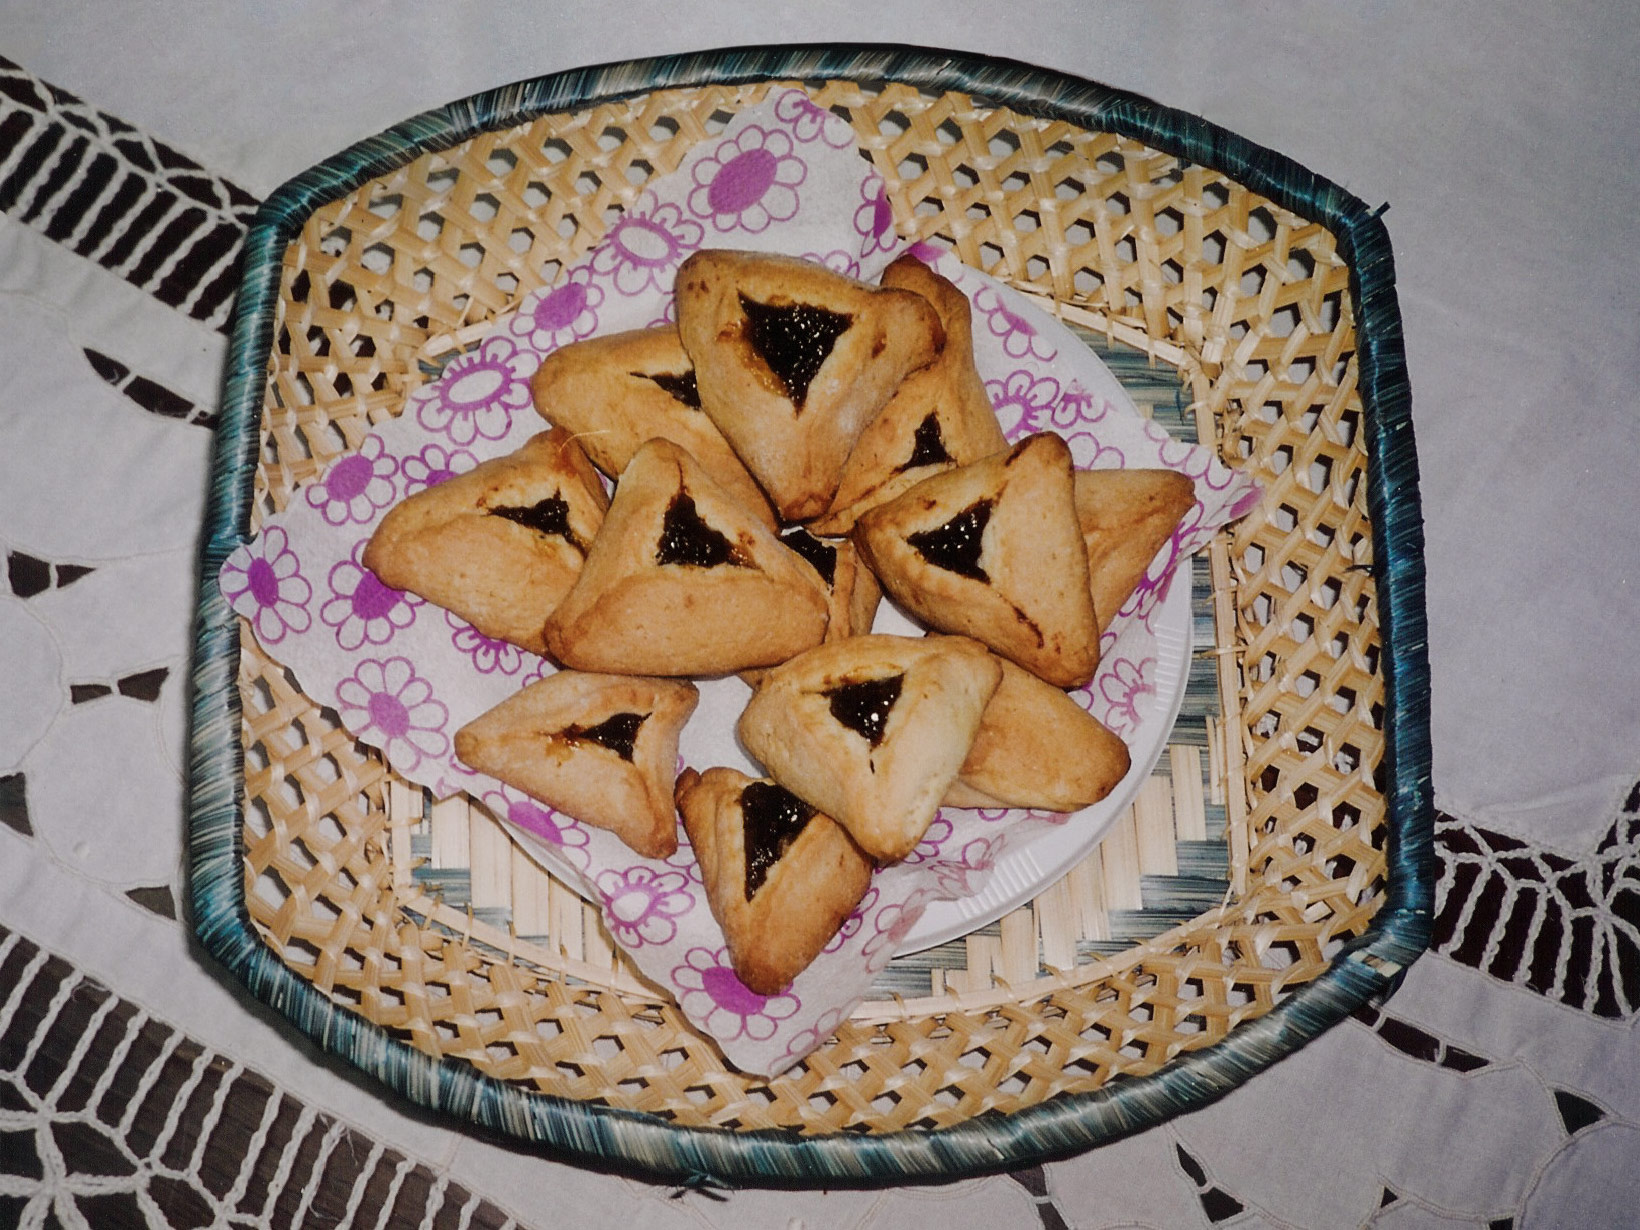 http://upload.wikimedia.org/wikipedia/commons/c/cb/Homemade_hamantaschen.jpg